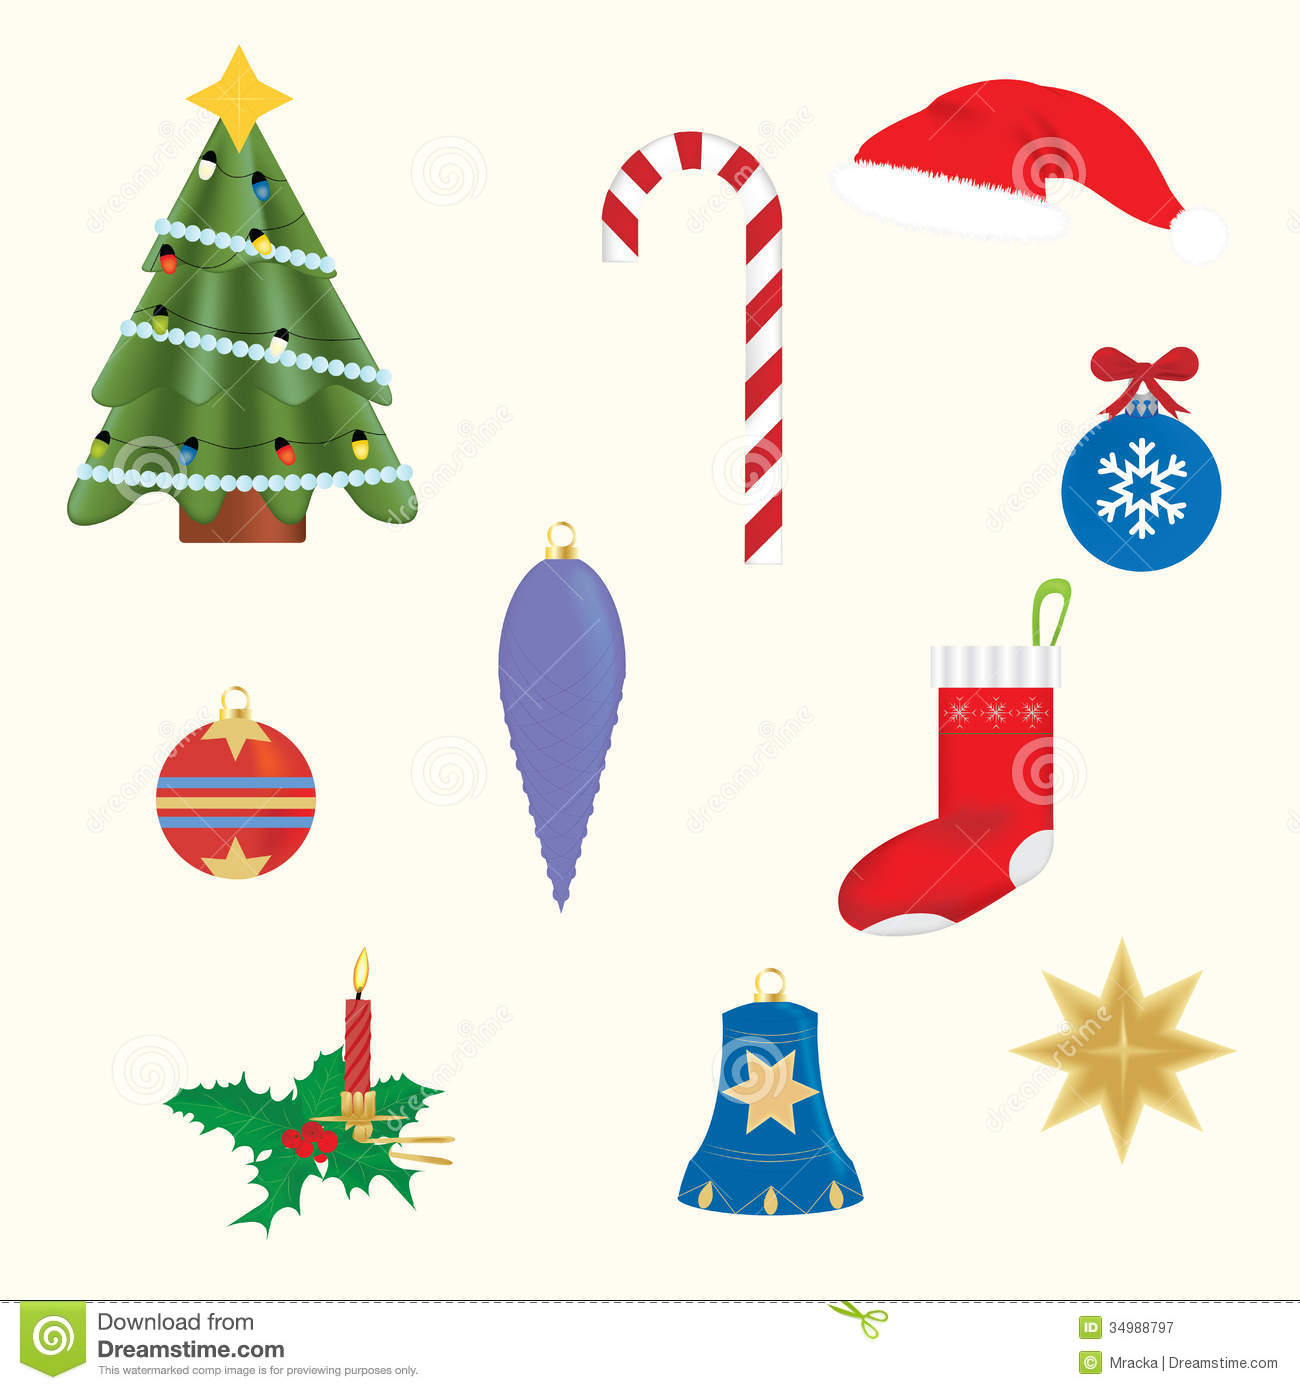 Is A Christmas Tree A Religious Symbol: Christmas Symbols Royalty Free Stock Photography